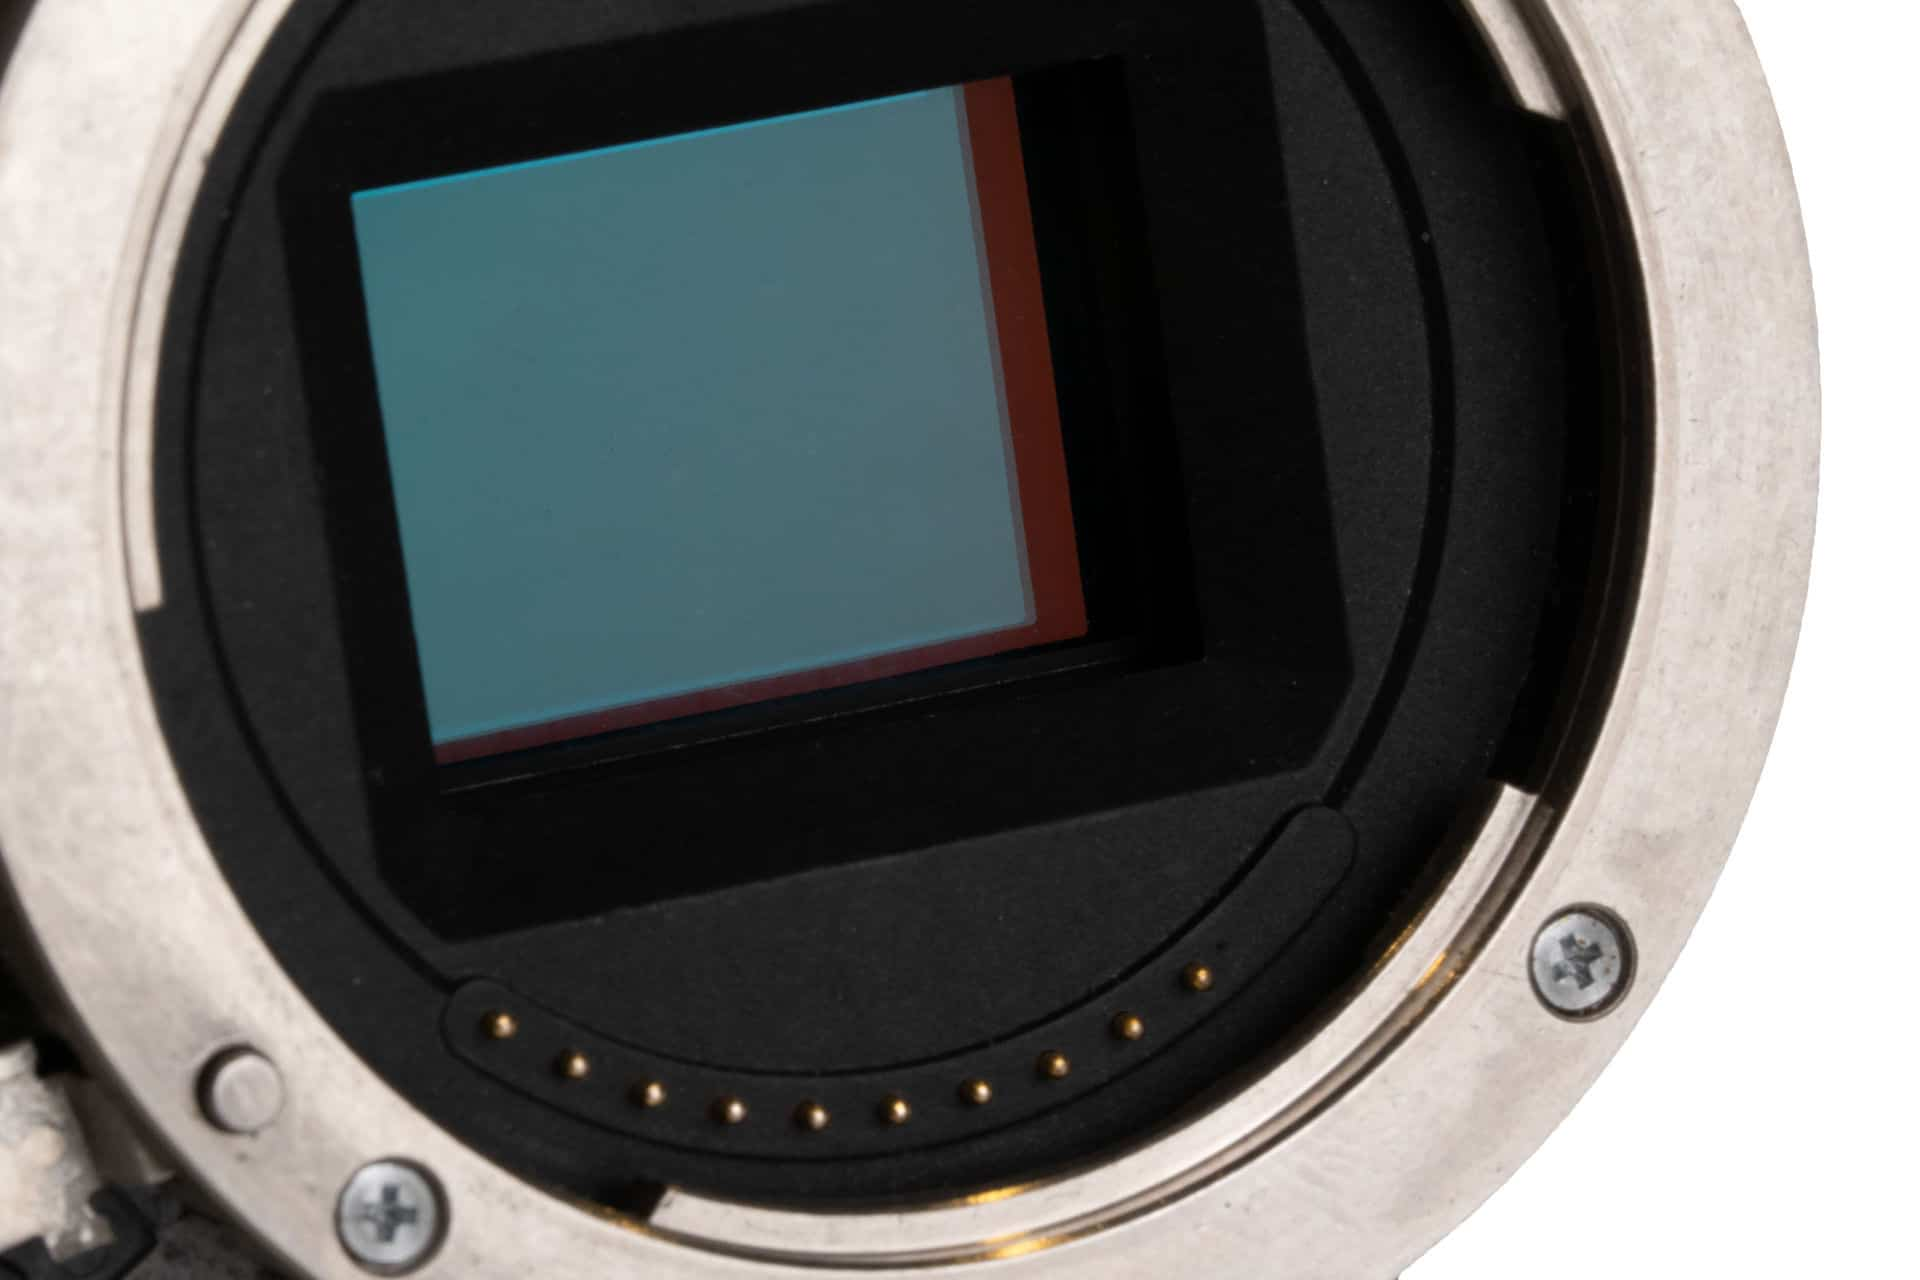 Are Full Frame Cameras Better Than Crop?